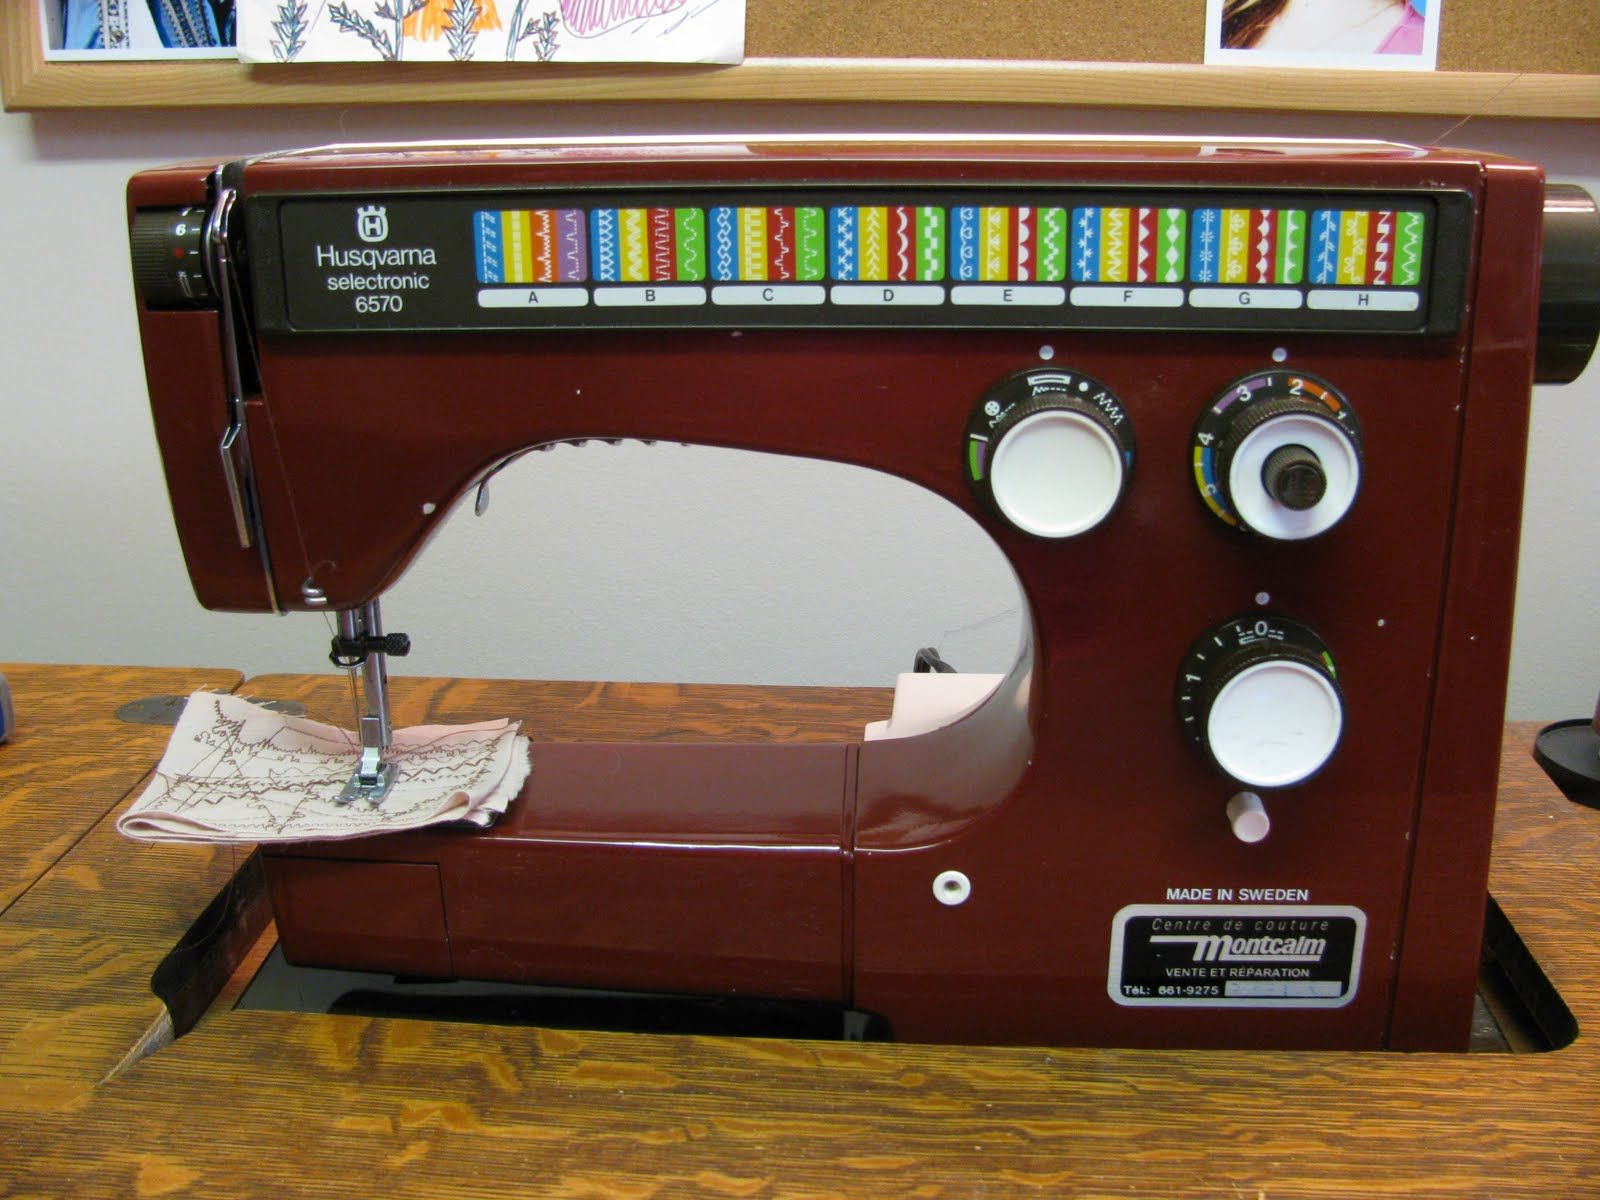 The sewing machine I currently own! Vintage Viking Husqvarna ... : viking quilting machines - Adamdwight.com